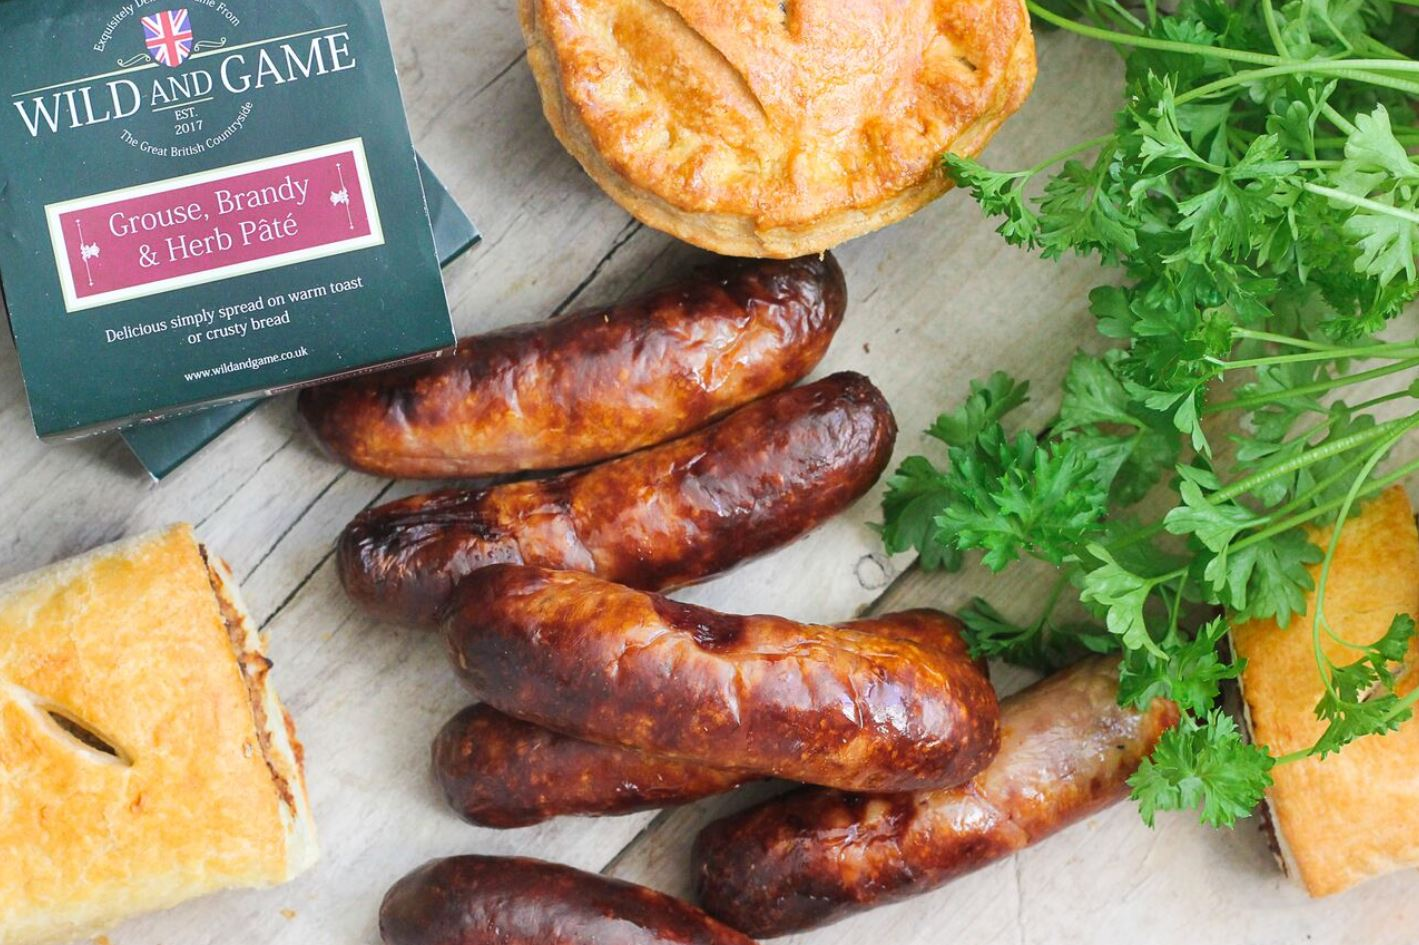 NEW FOOD PRODUCER CHAMPIONS GREAT BRITISH GAME